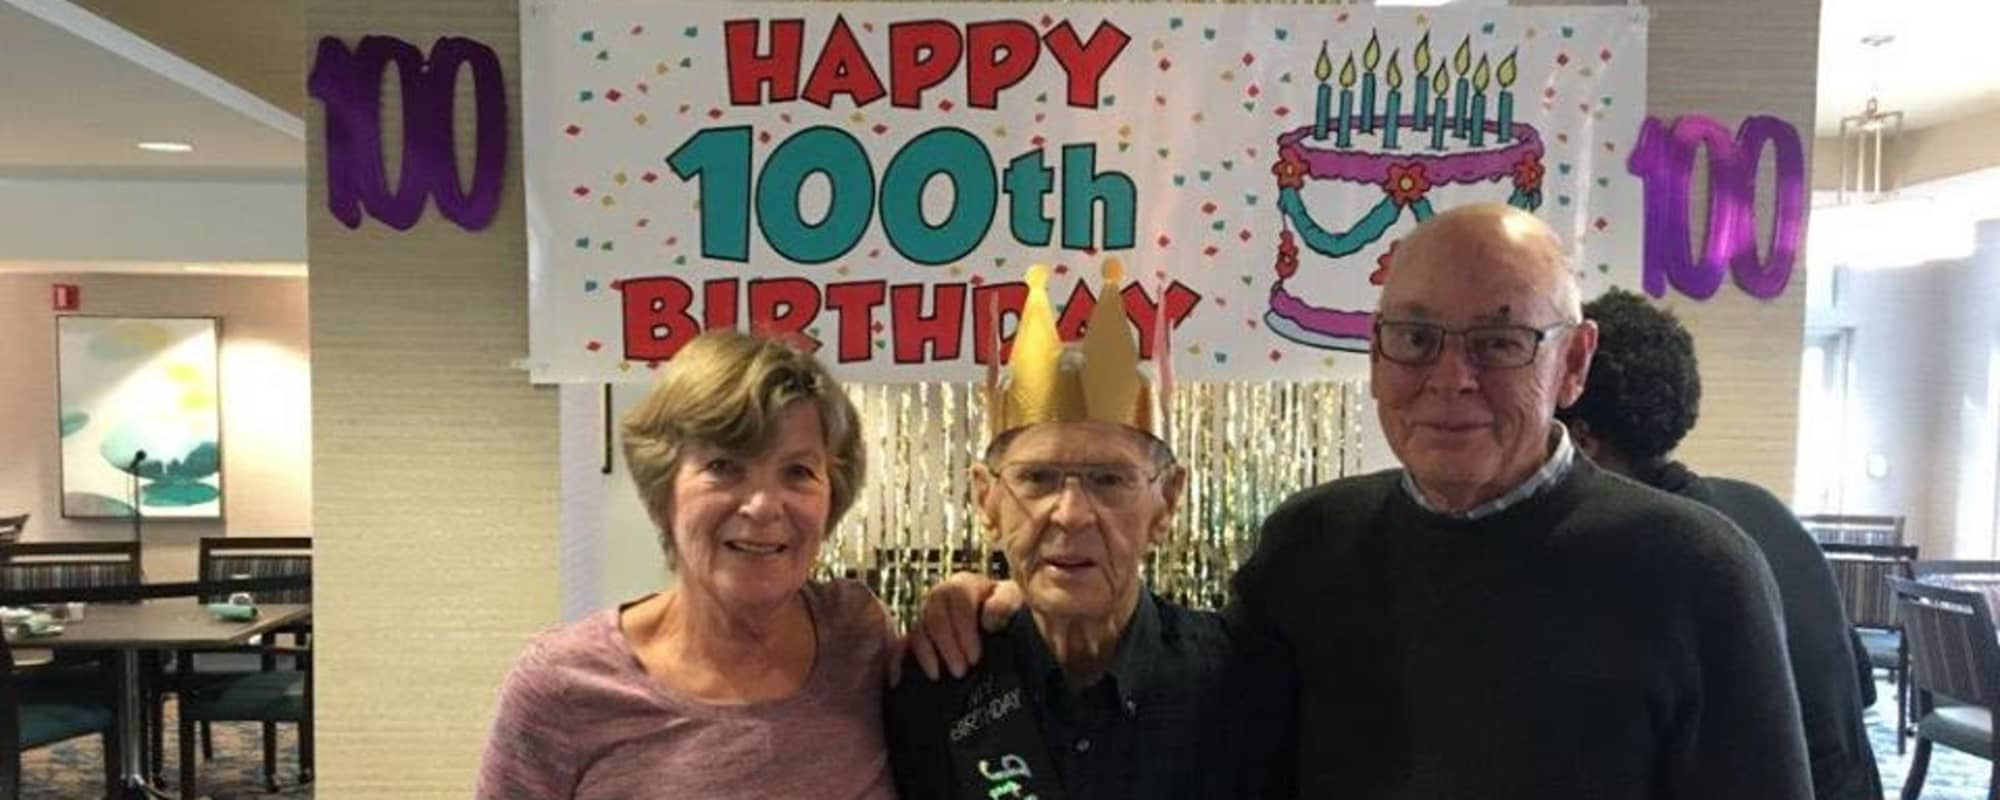 Happy 100th birthday at Northgate Plaza in Seattle, Washington